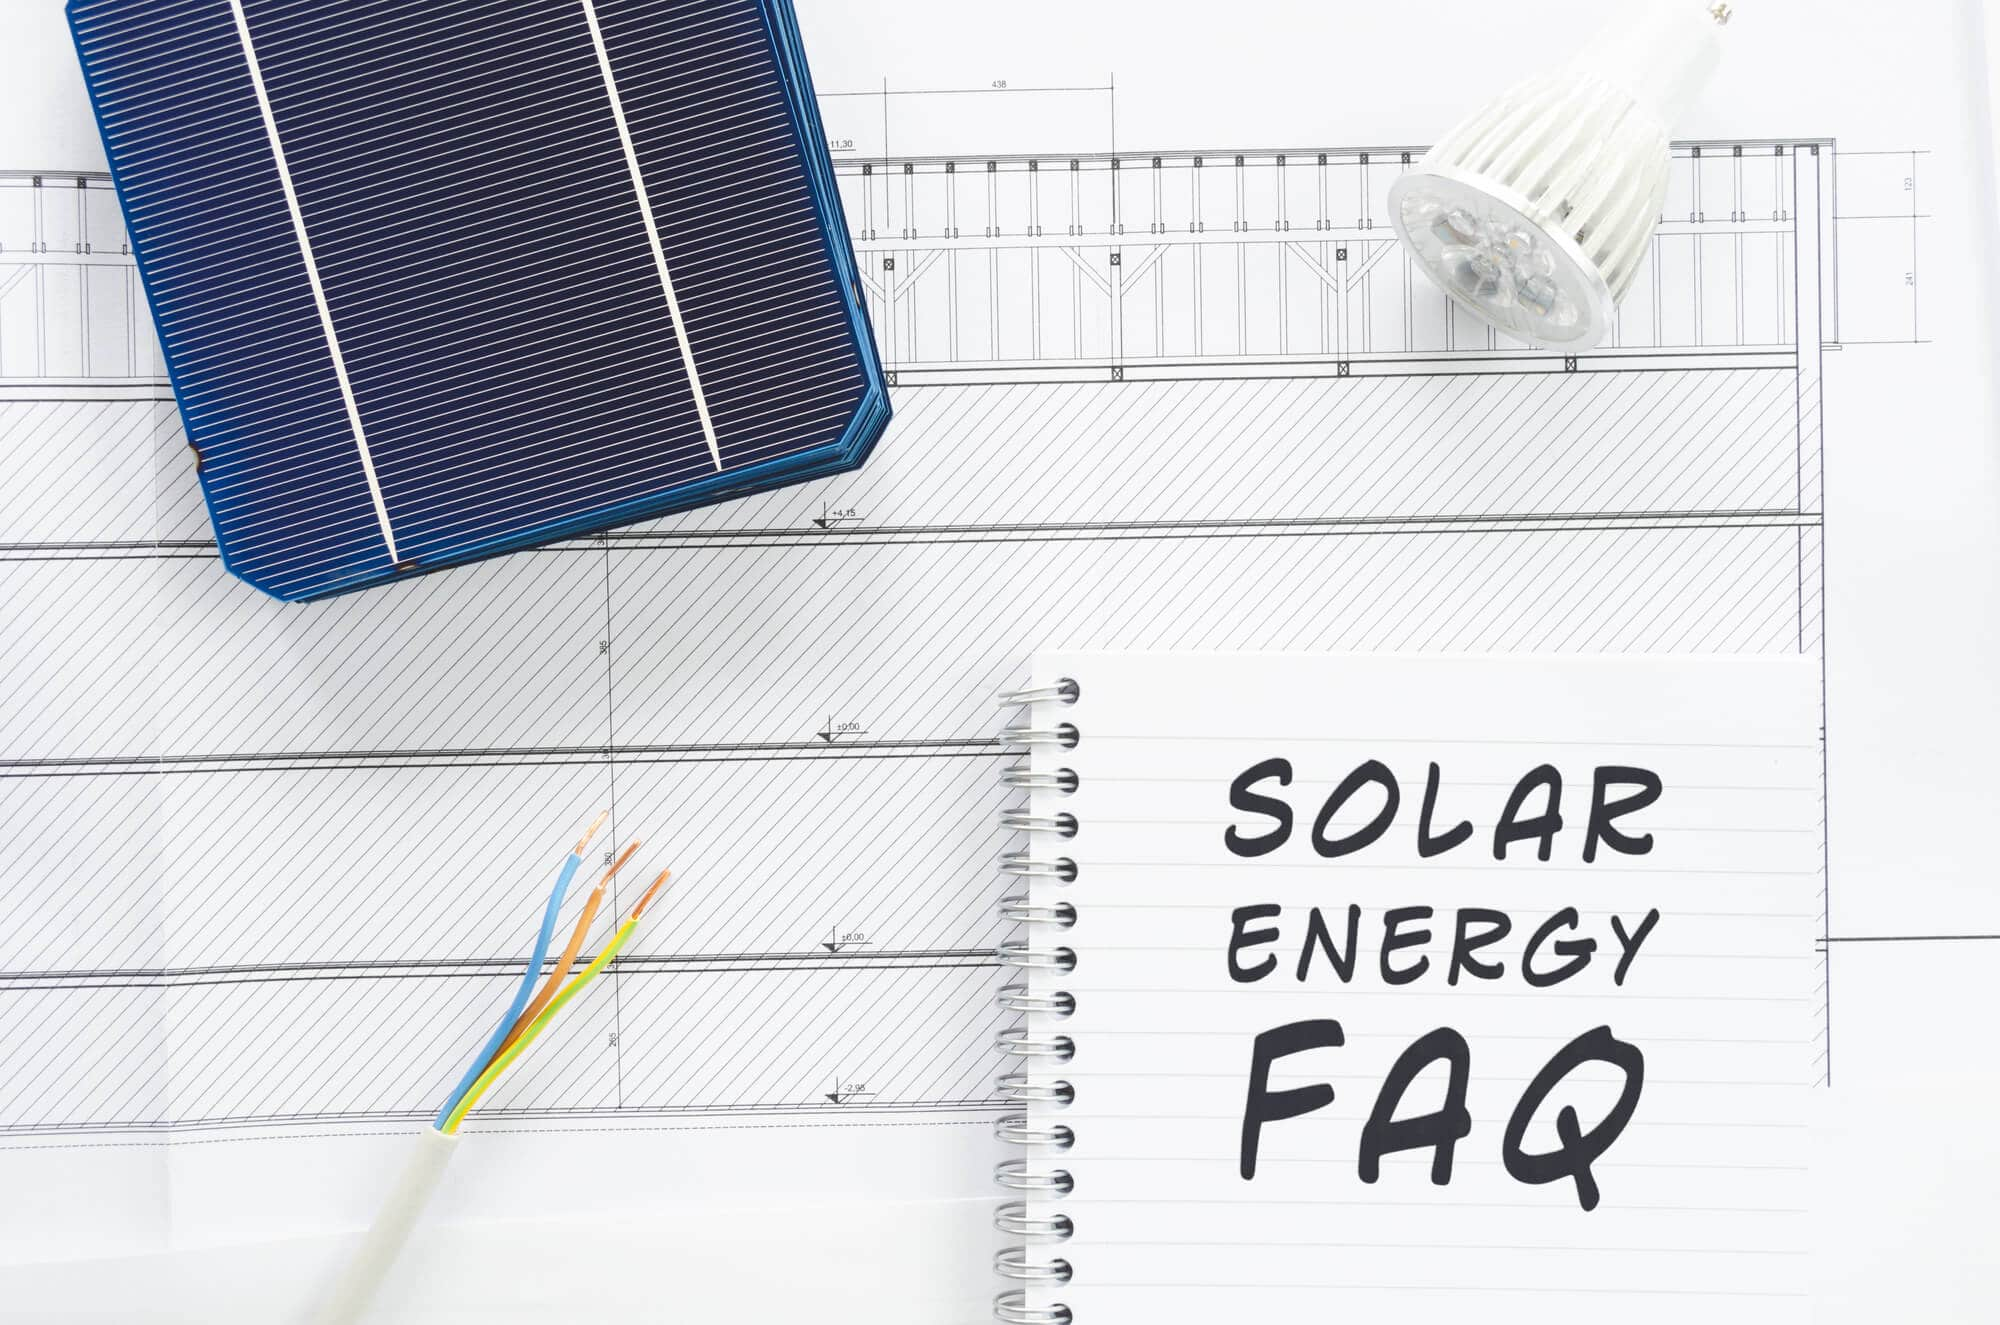 solar energy faq - Small Energy Bill